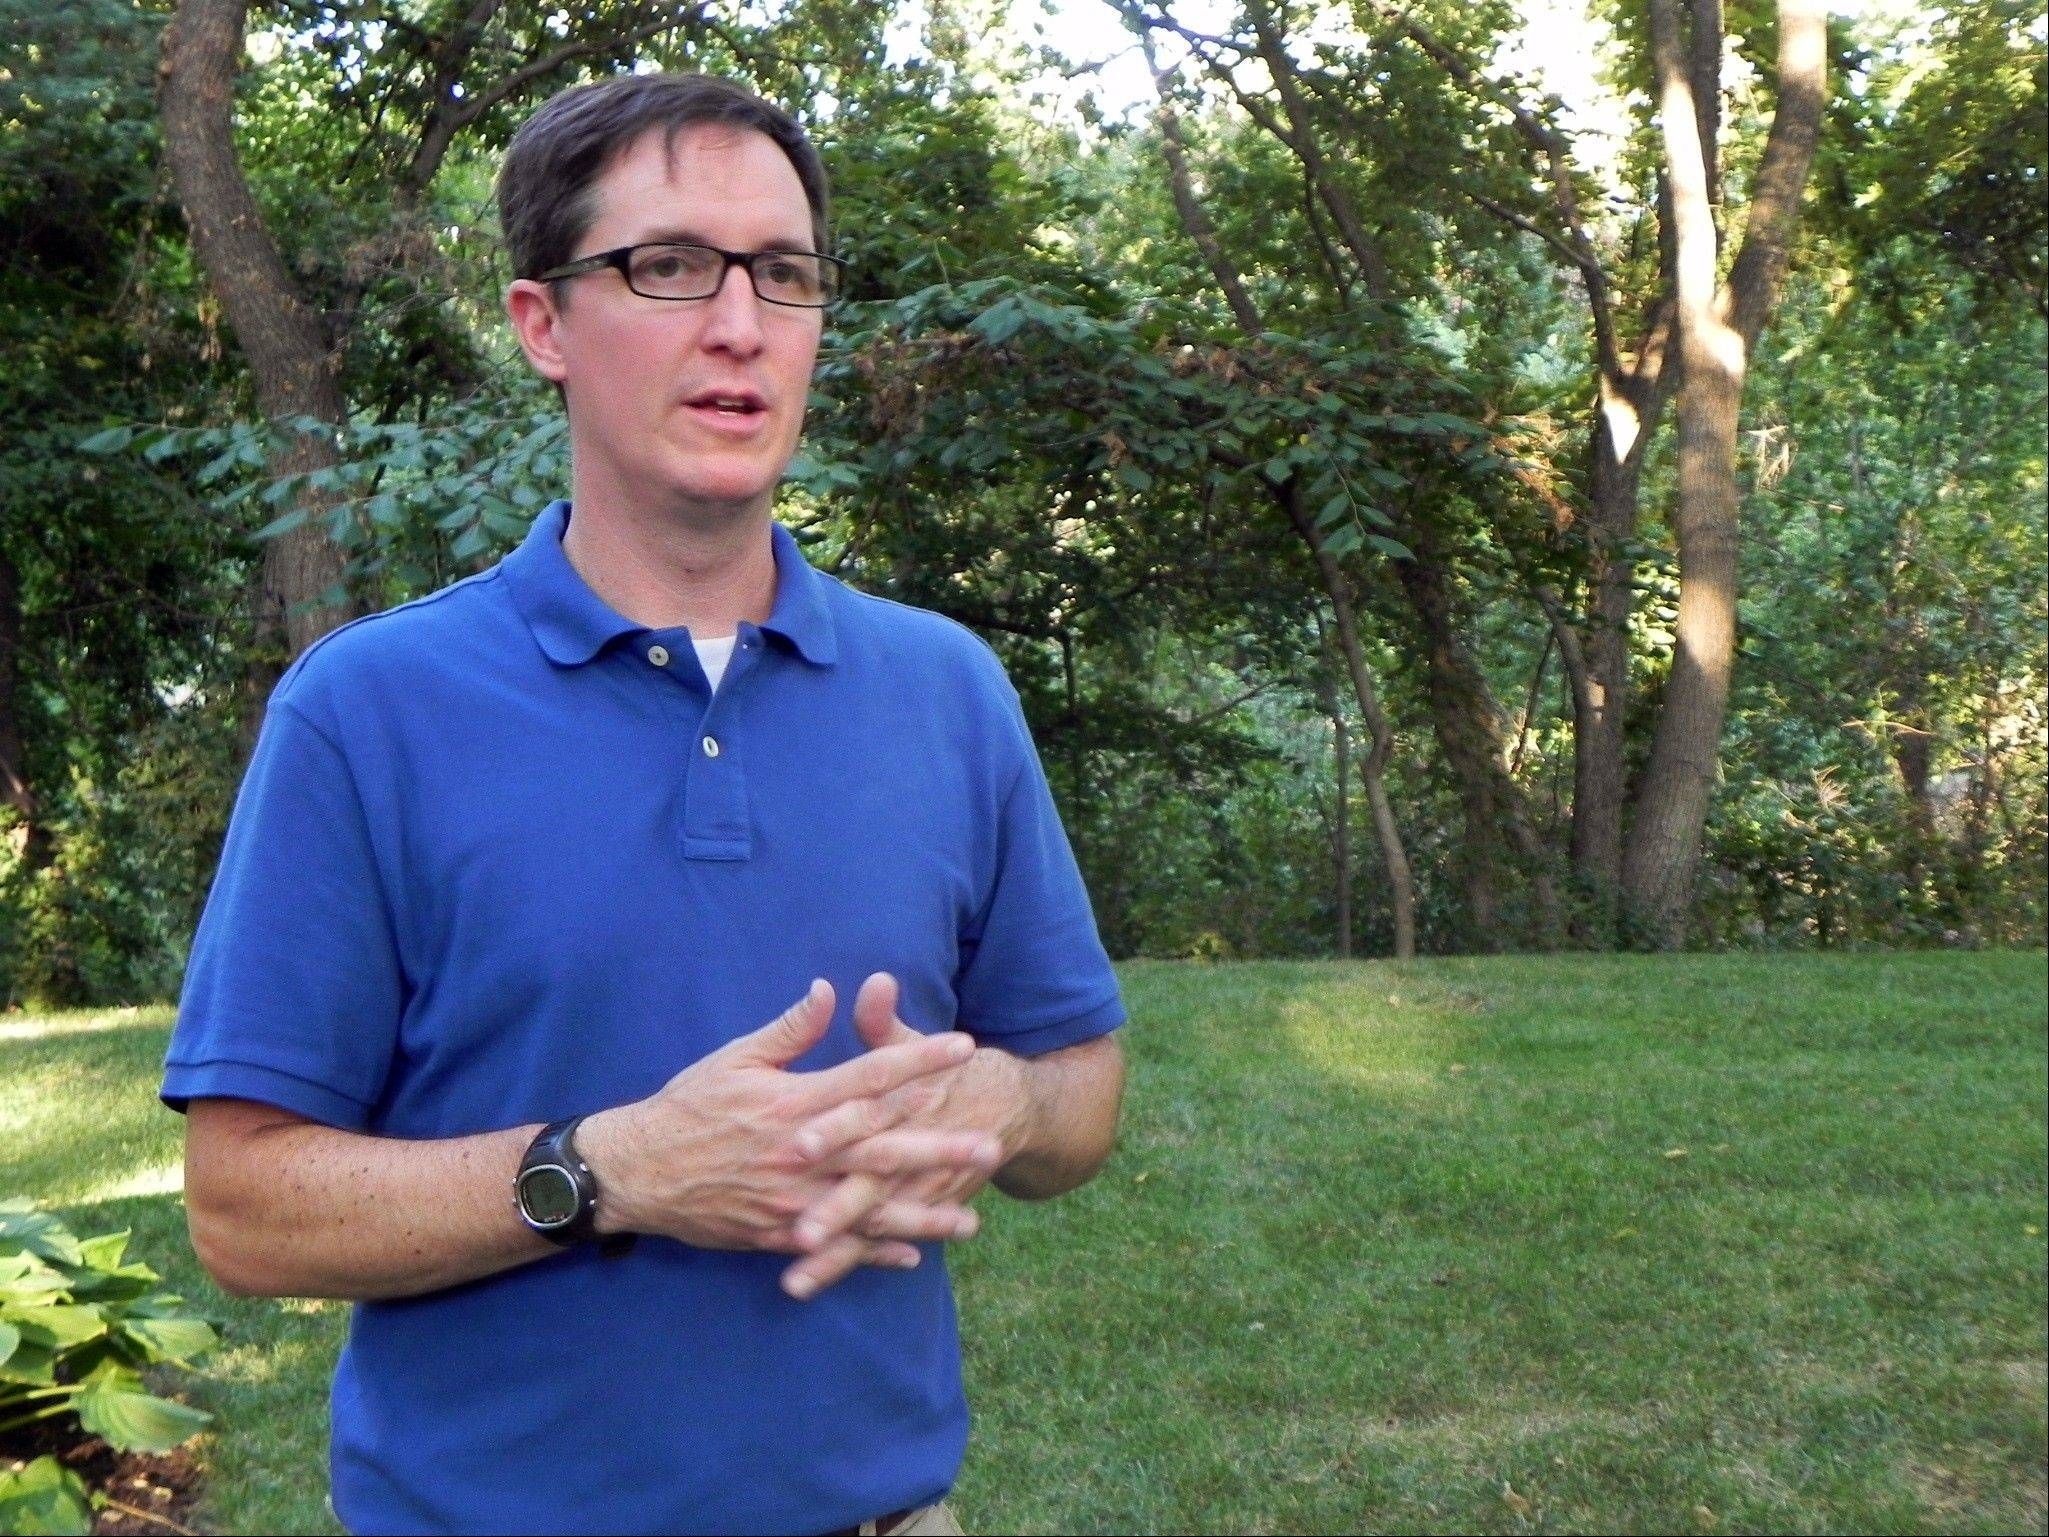 Brad Wolgast, Ph.D., of the University of Delaware, discusses sleep disorders and medication, in Topeka, Kan. As college students return to campus in the coming weeks, they'll be showered in the usual handouts of coupons, condoms, and credit cards. But some schools are also giving students what a growing body of research reveals could make a huge difference in their college careers: ear plugs, sleep shades and napping lessons.